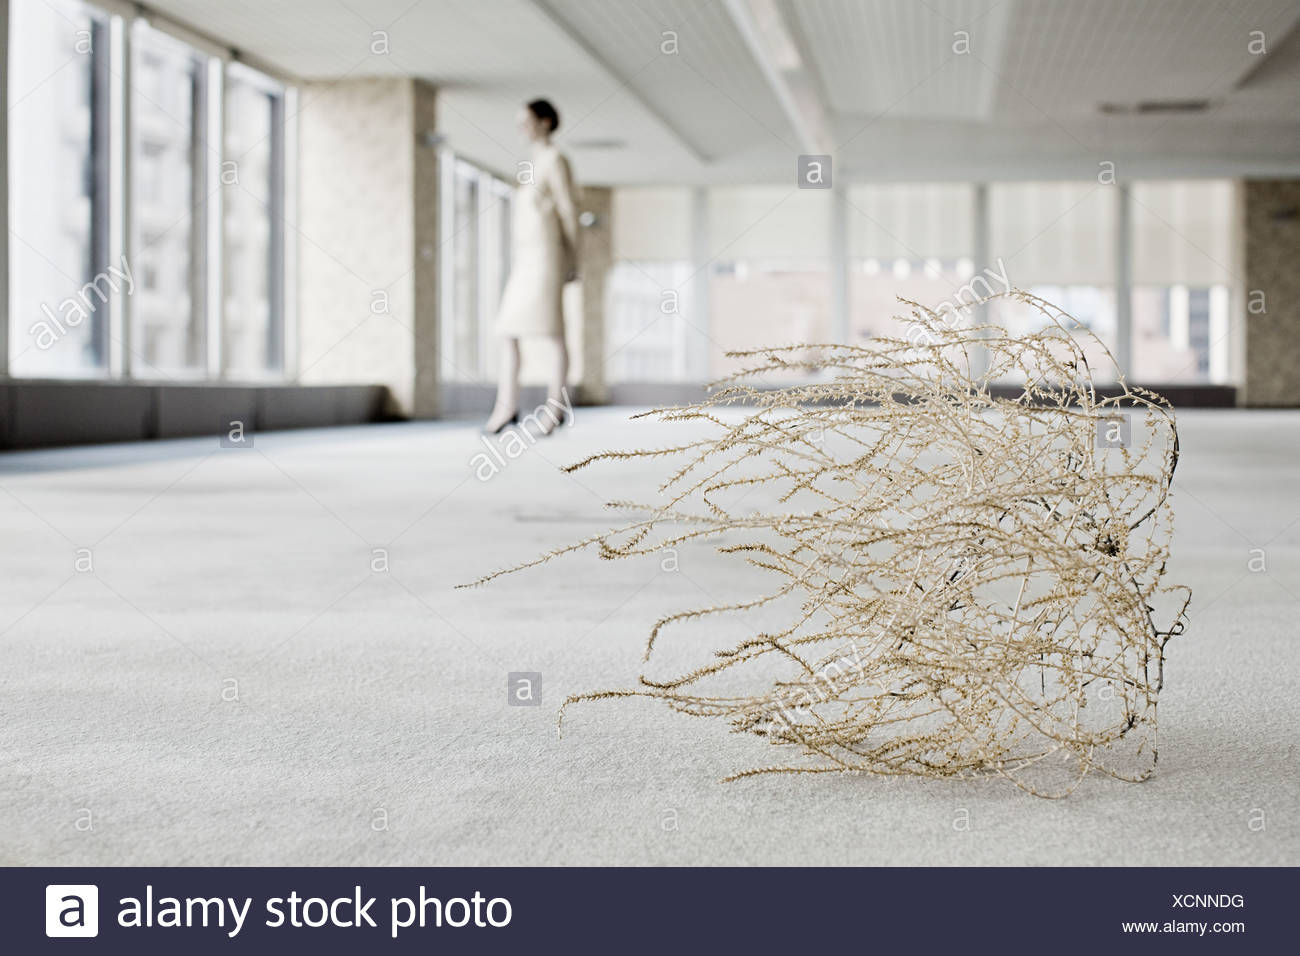 Businesswoman in office with tumbleweed - Stock Image